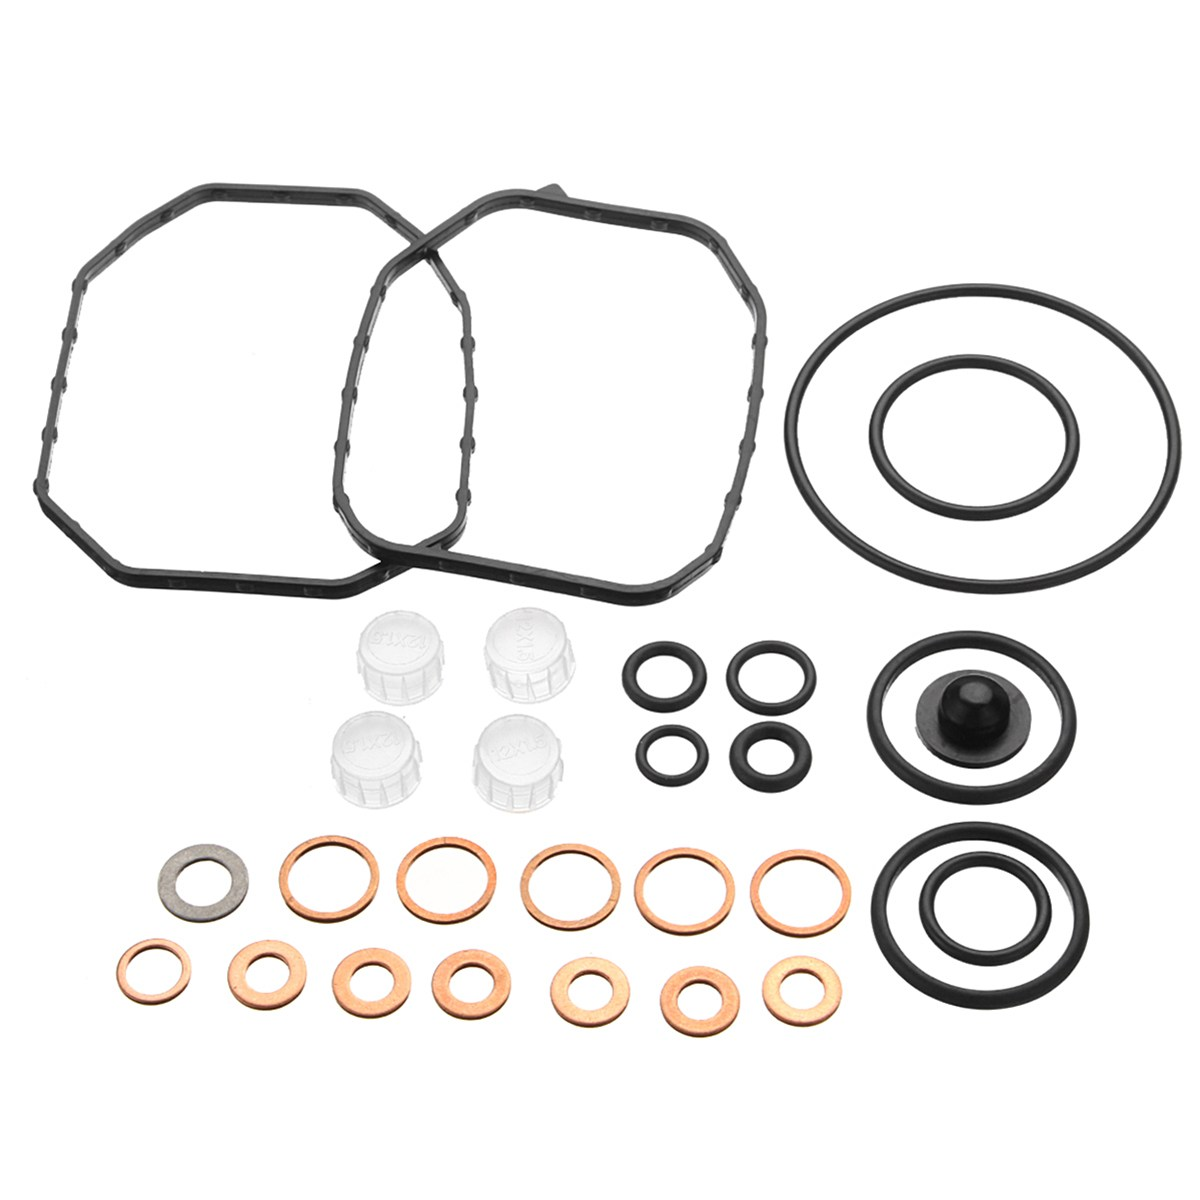 Injection Pump Repair Seal Kit For VW Beetle Golf Jetta